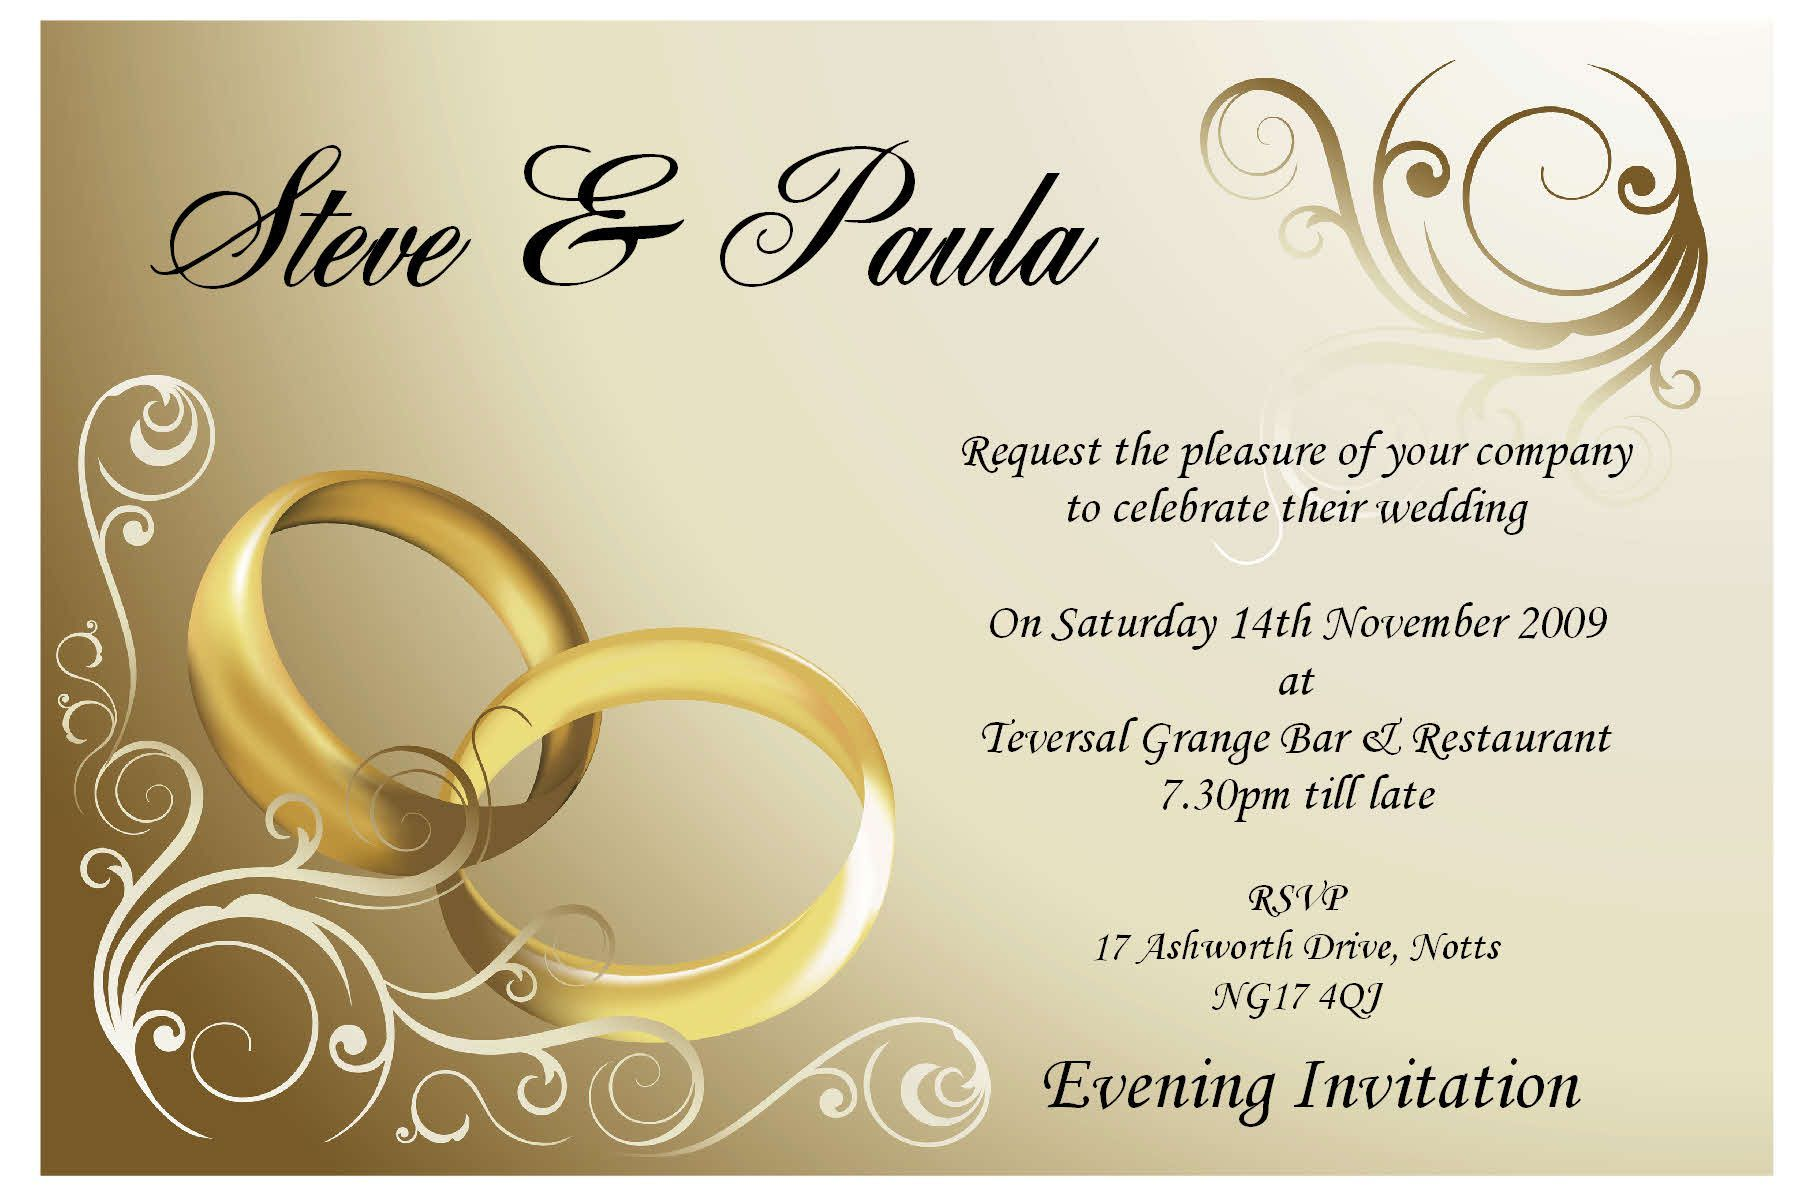 wedding invite design online koni polycode co